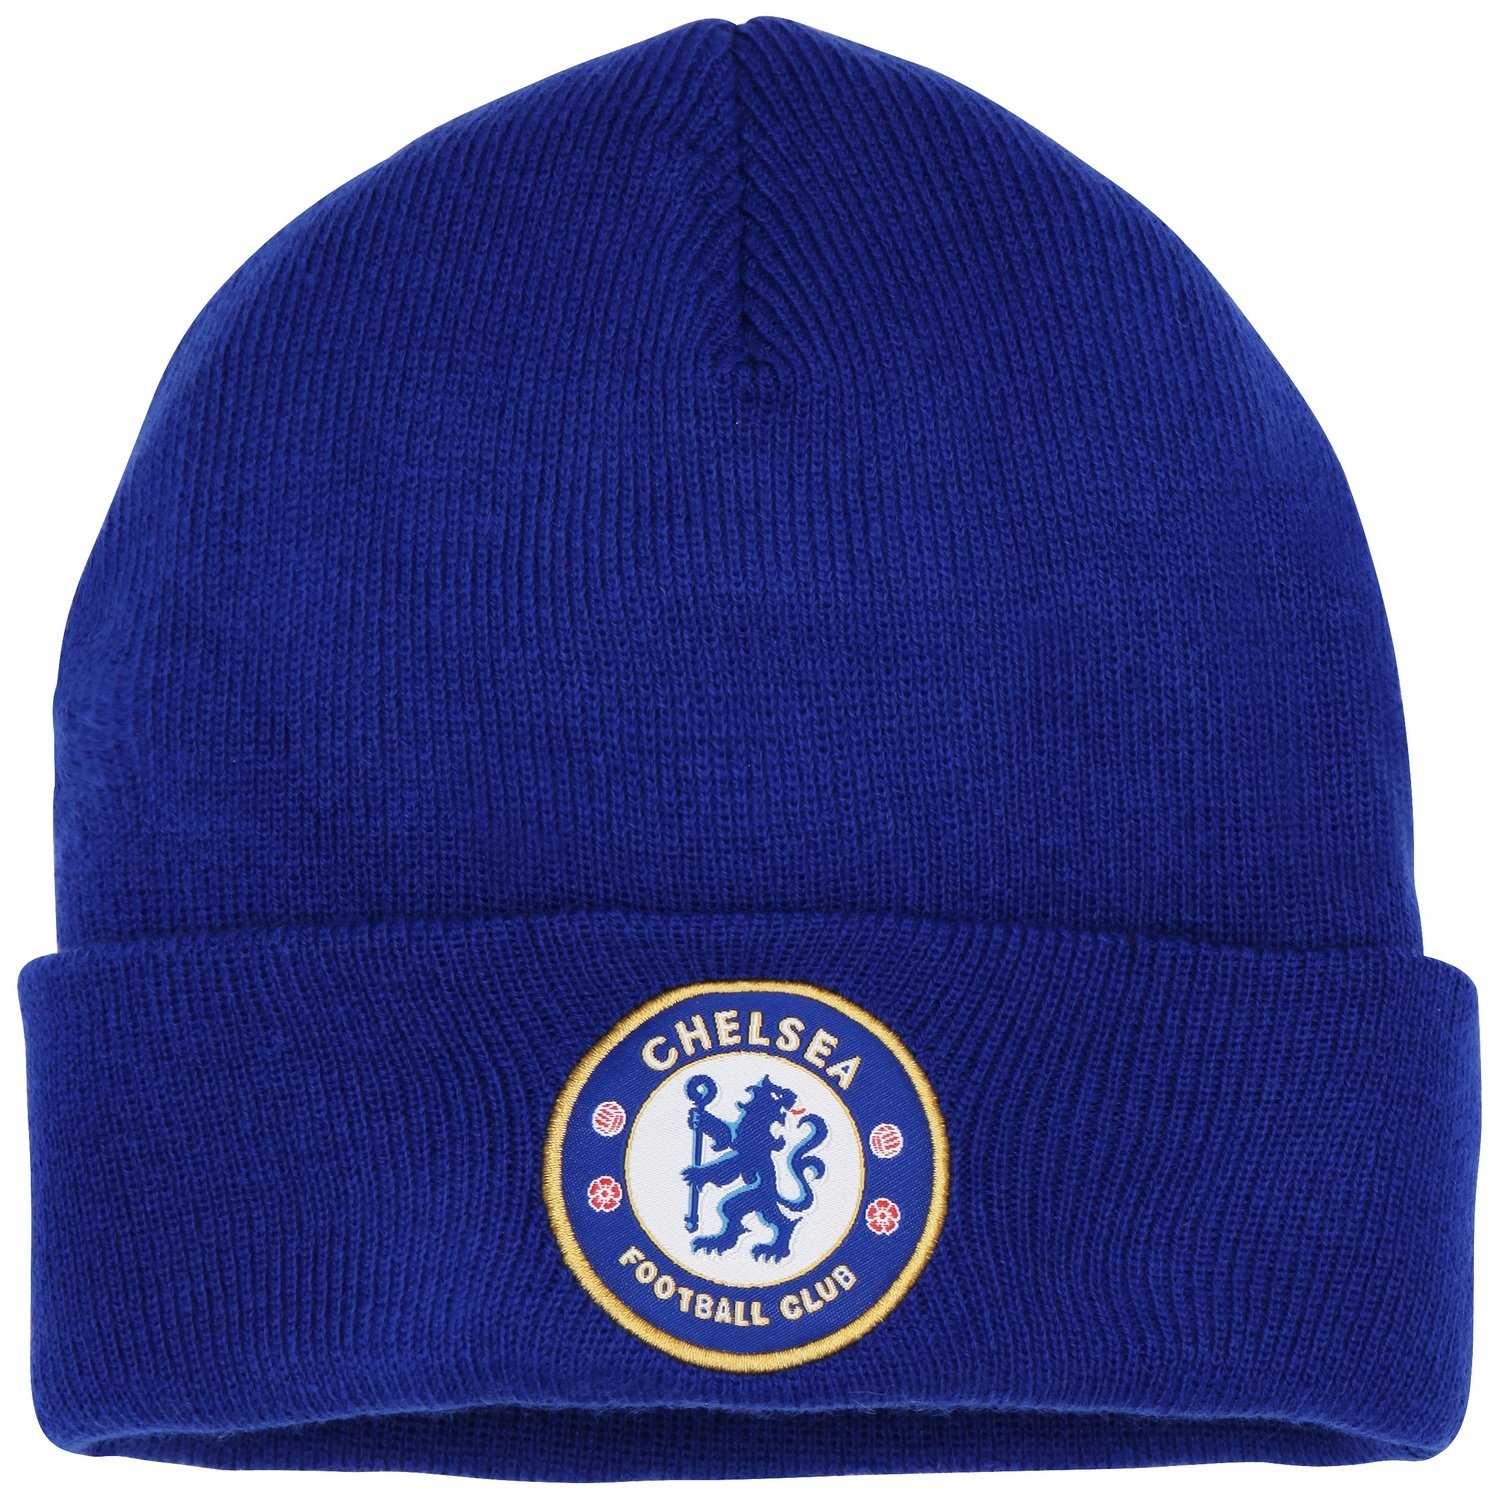 1aeeb842b60 Amazon.com  Official Soccer Football Merchandise Adult Chelsea FC Core  Winter Beanie Hat (One Size) (Royal Blue)  Clothing